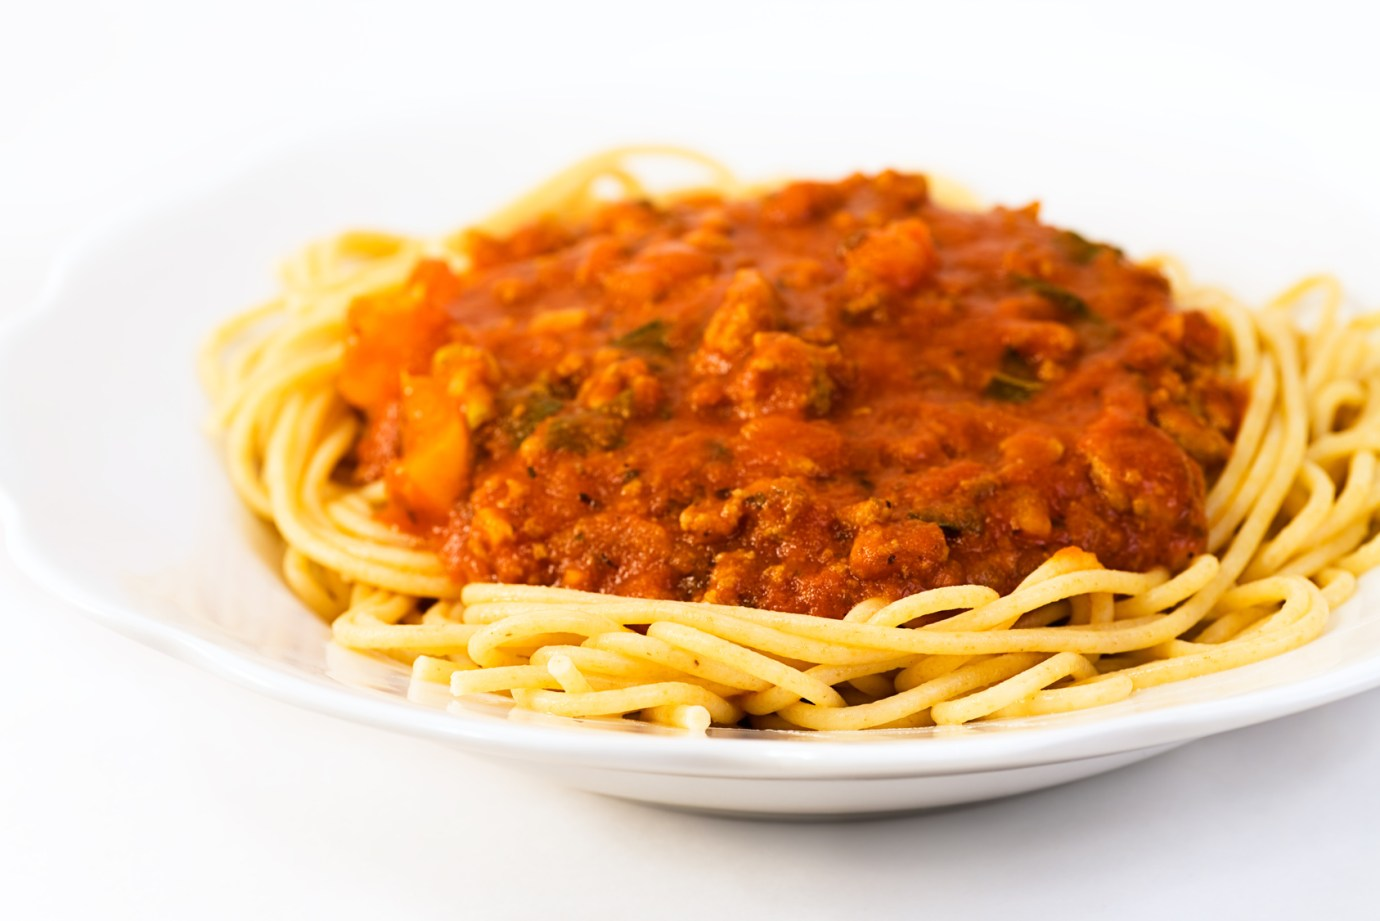 Whole Wheat Pasta and Spaghetti Sauce